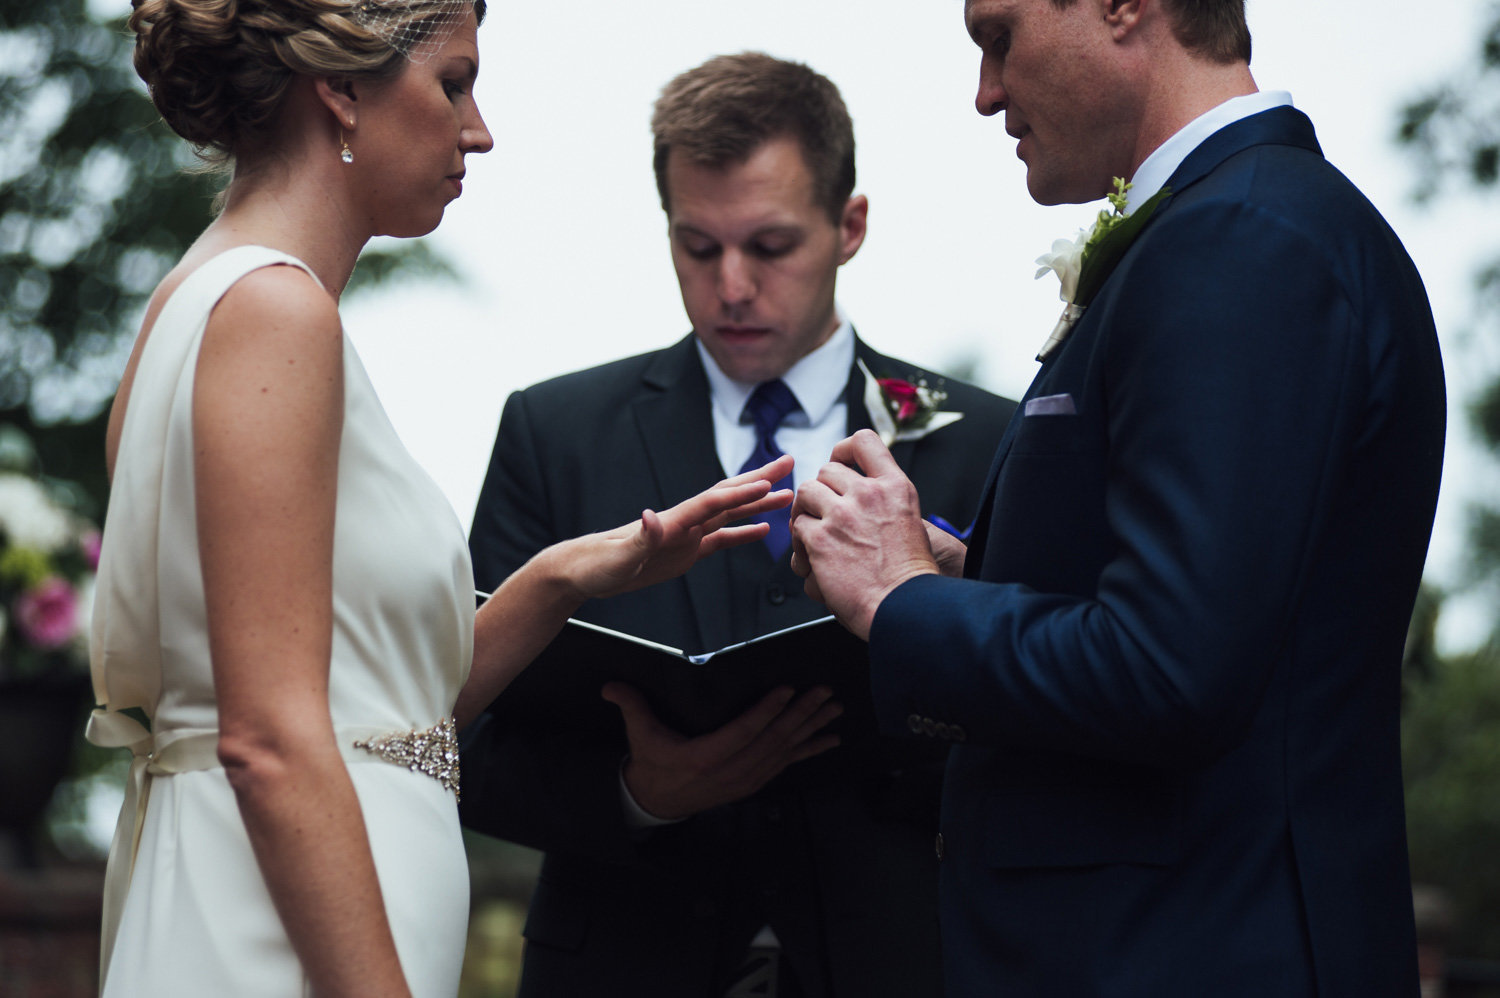 bride and groom exchange rings at outside ceremony